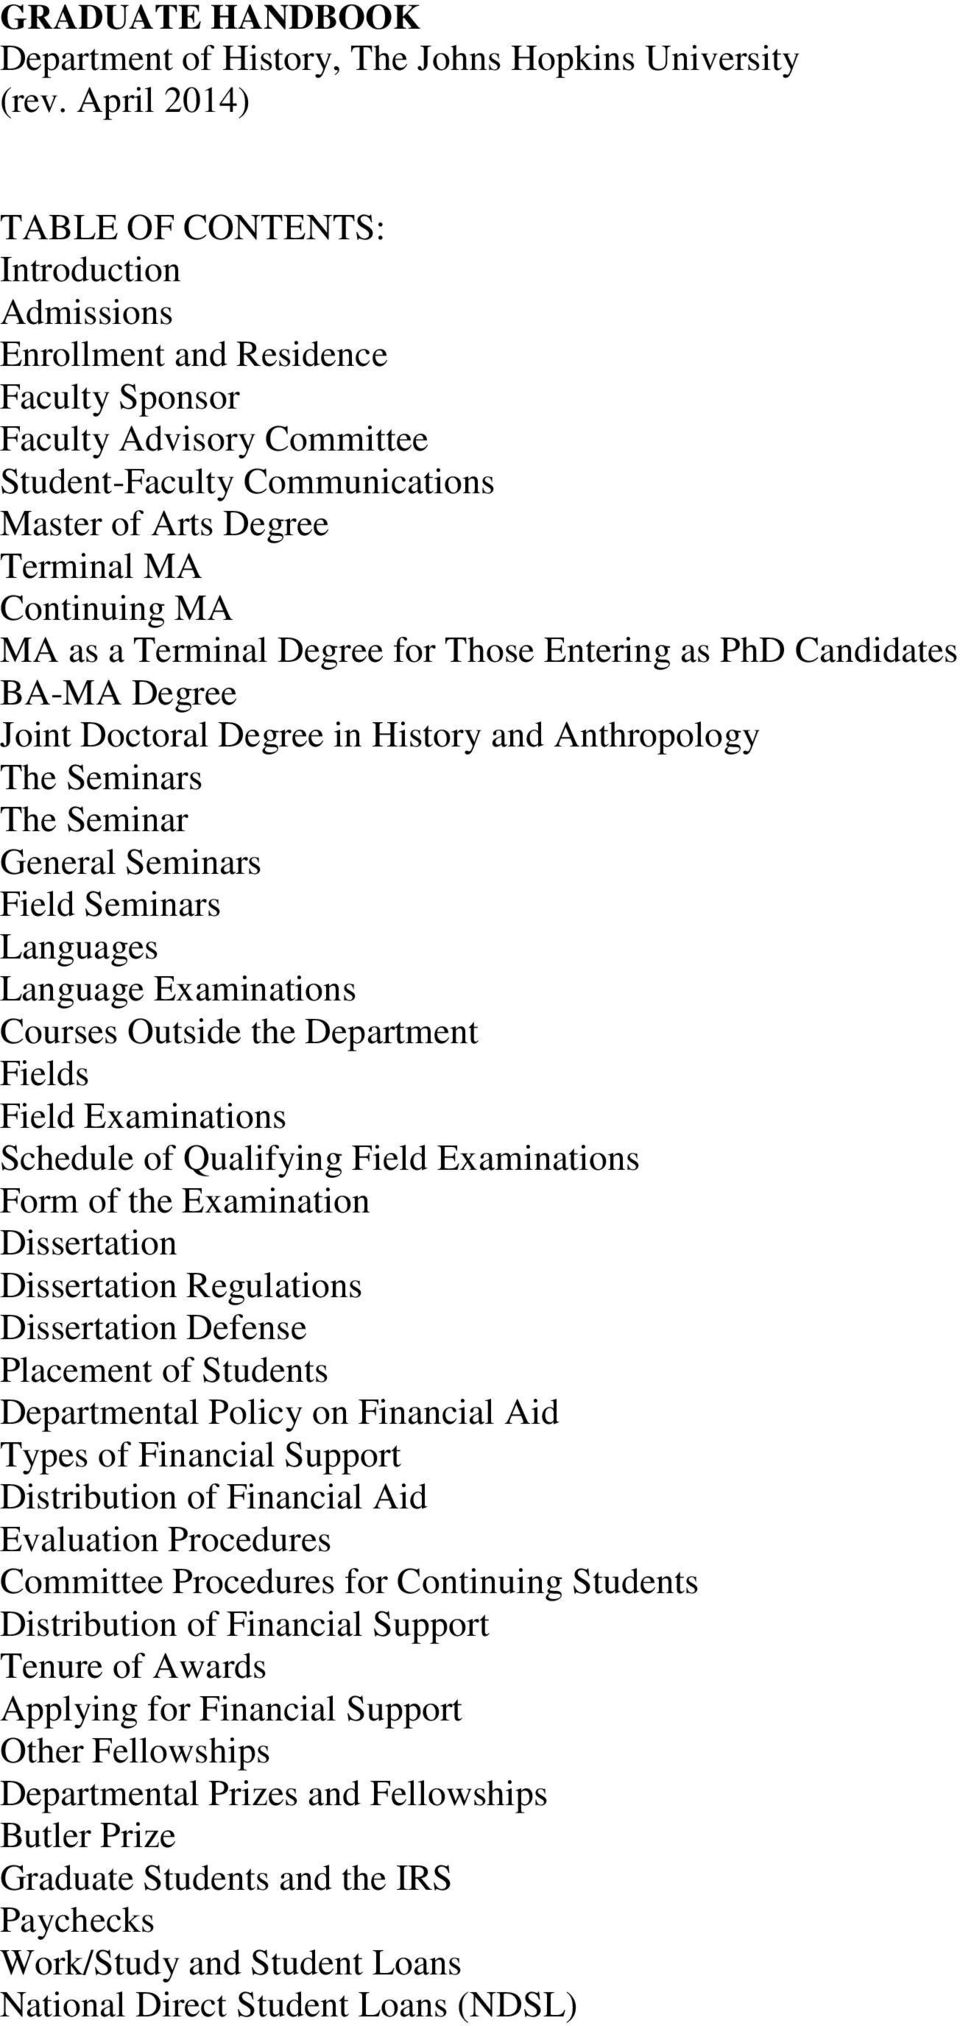 MA MA as a Terminal Degree for Those Entering as PhD Candidates BA-MA Degree Joint Doctoral Degree in History and Anthropology The Seminars The Seminar General Seminars Field Seminars Languages